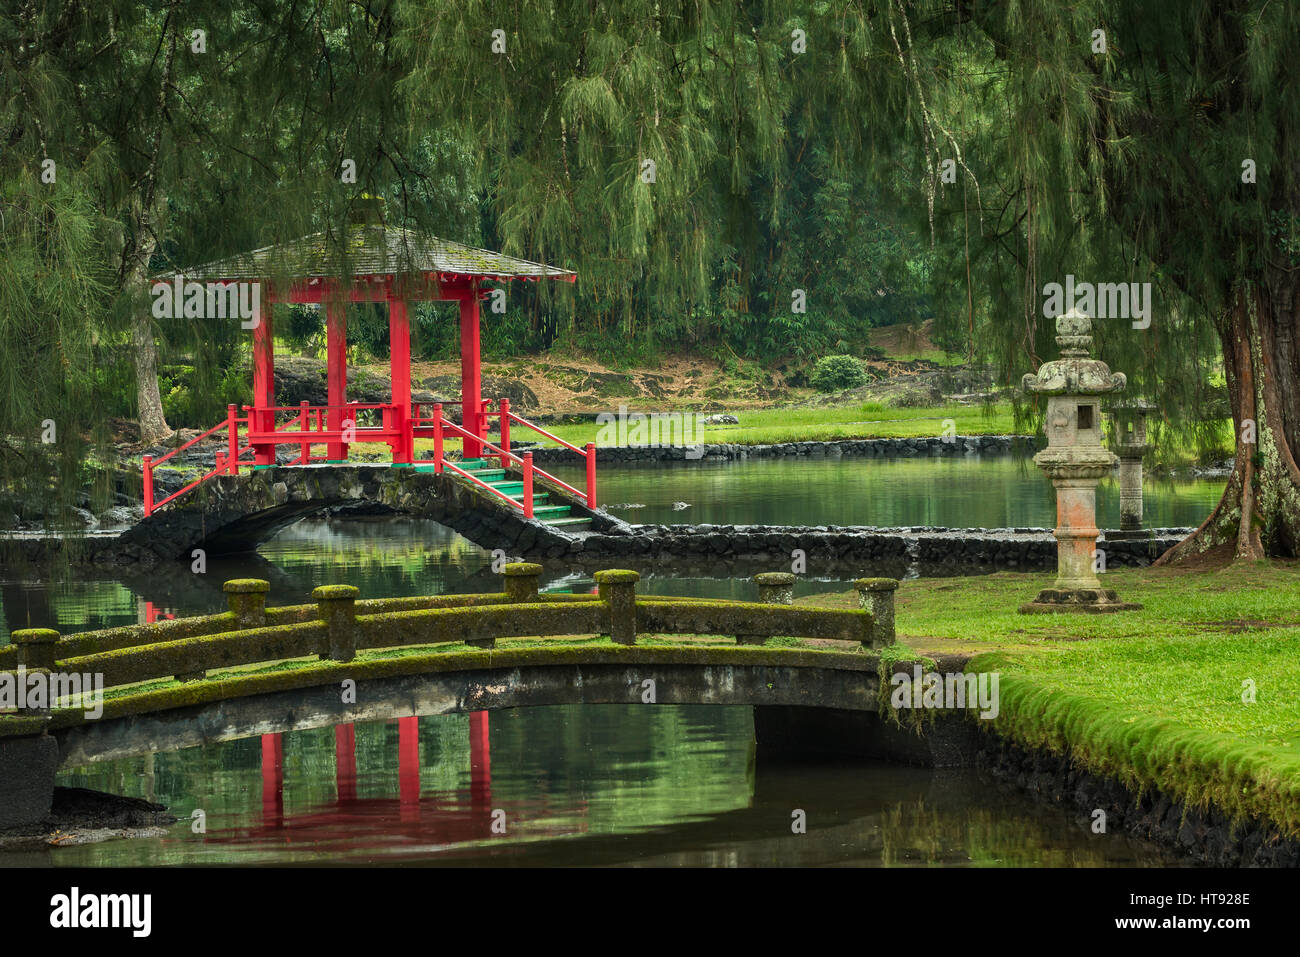 Fishpond, pagoda and bridges in the Japanese Garden of Liliuokalani Gardens in Hilo on the Big Island of Hawaii. - Stock Image